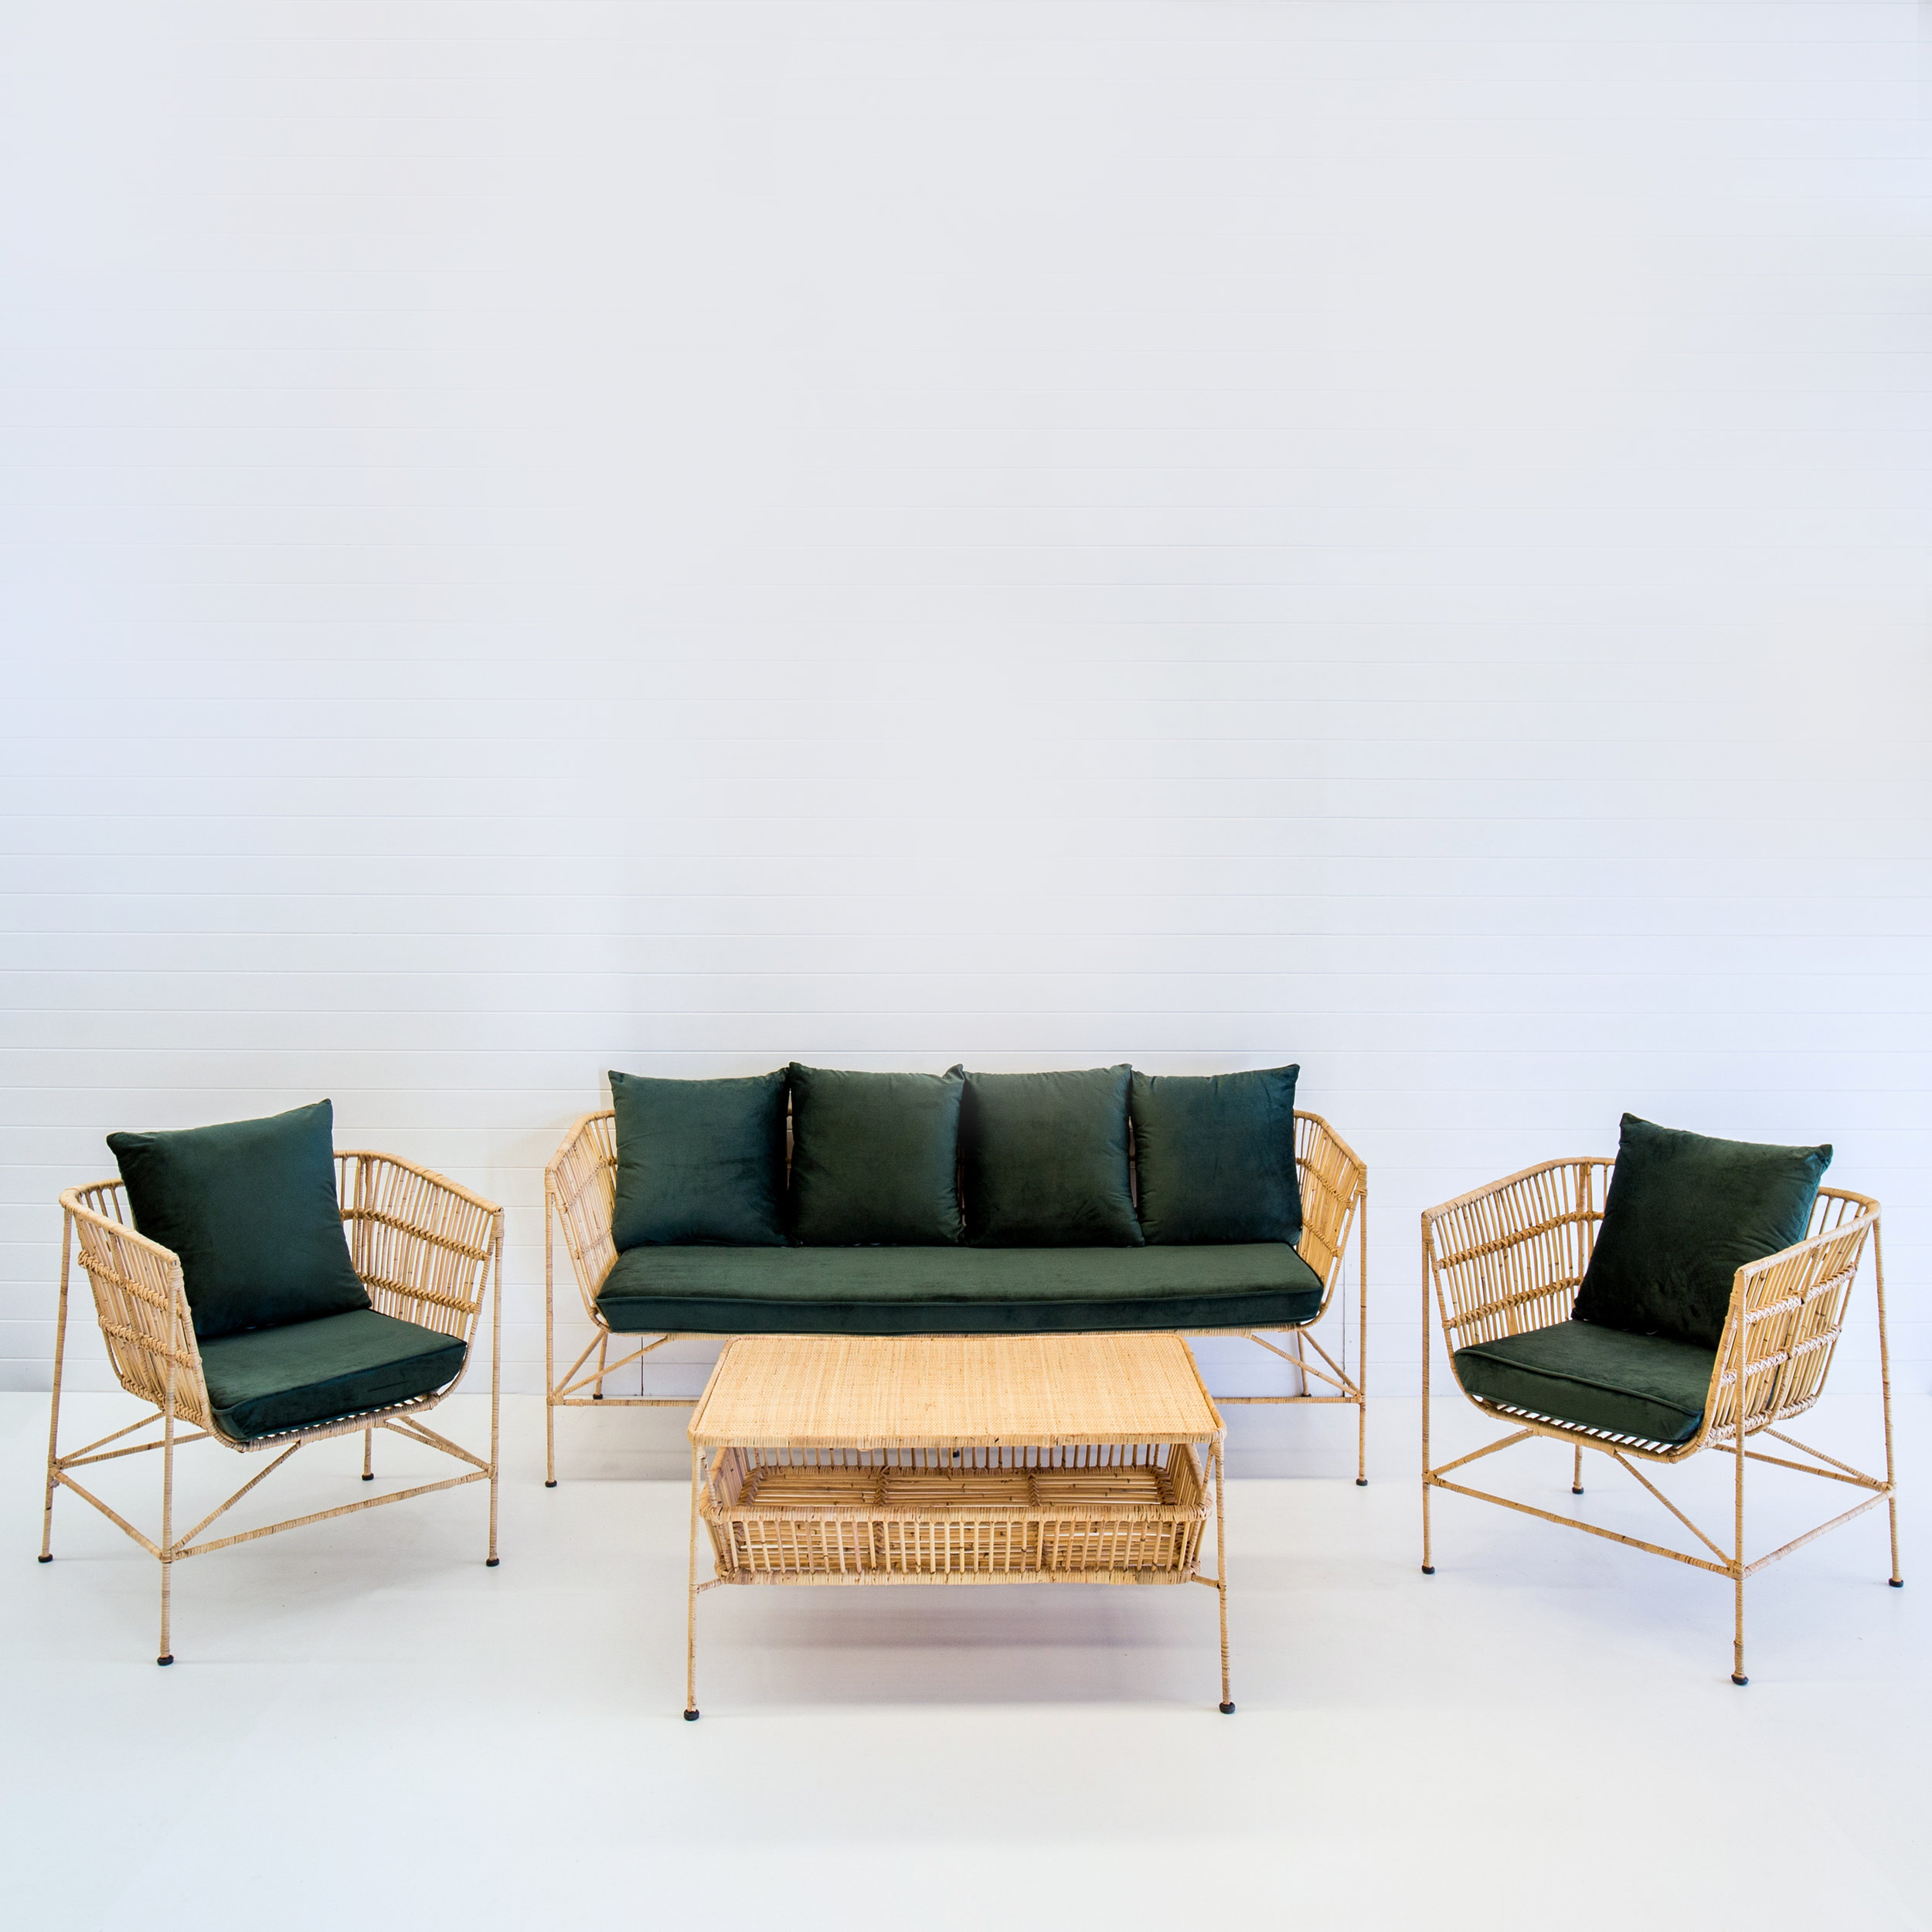 Indie natural sofa package with emerald green cushions